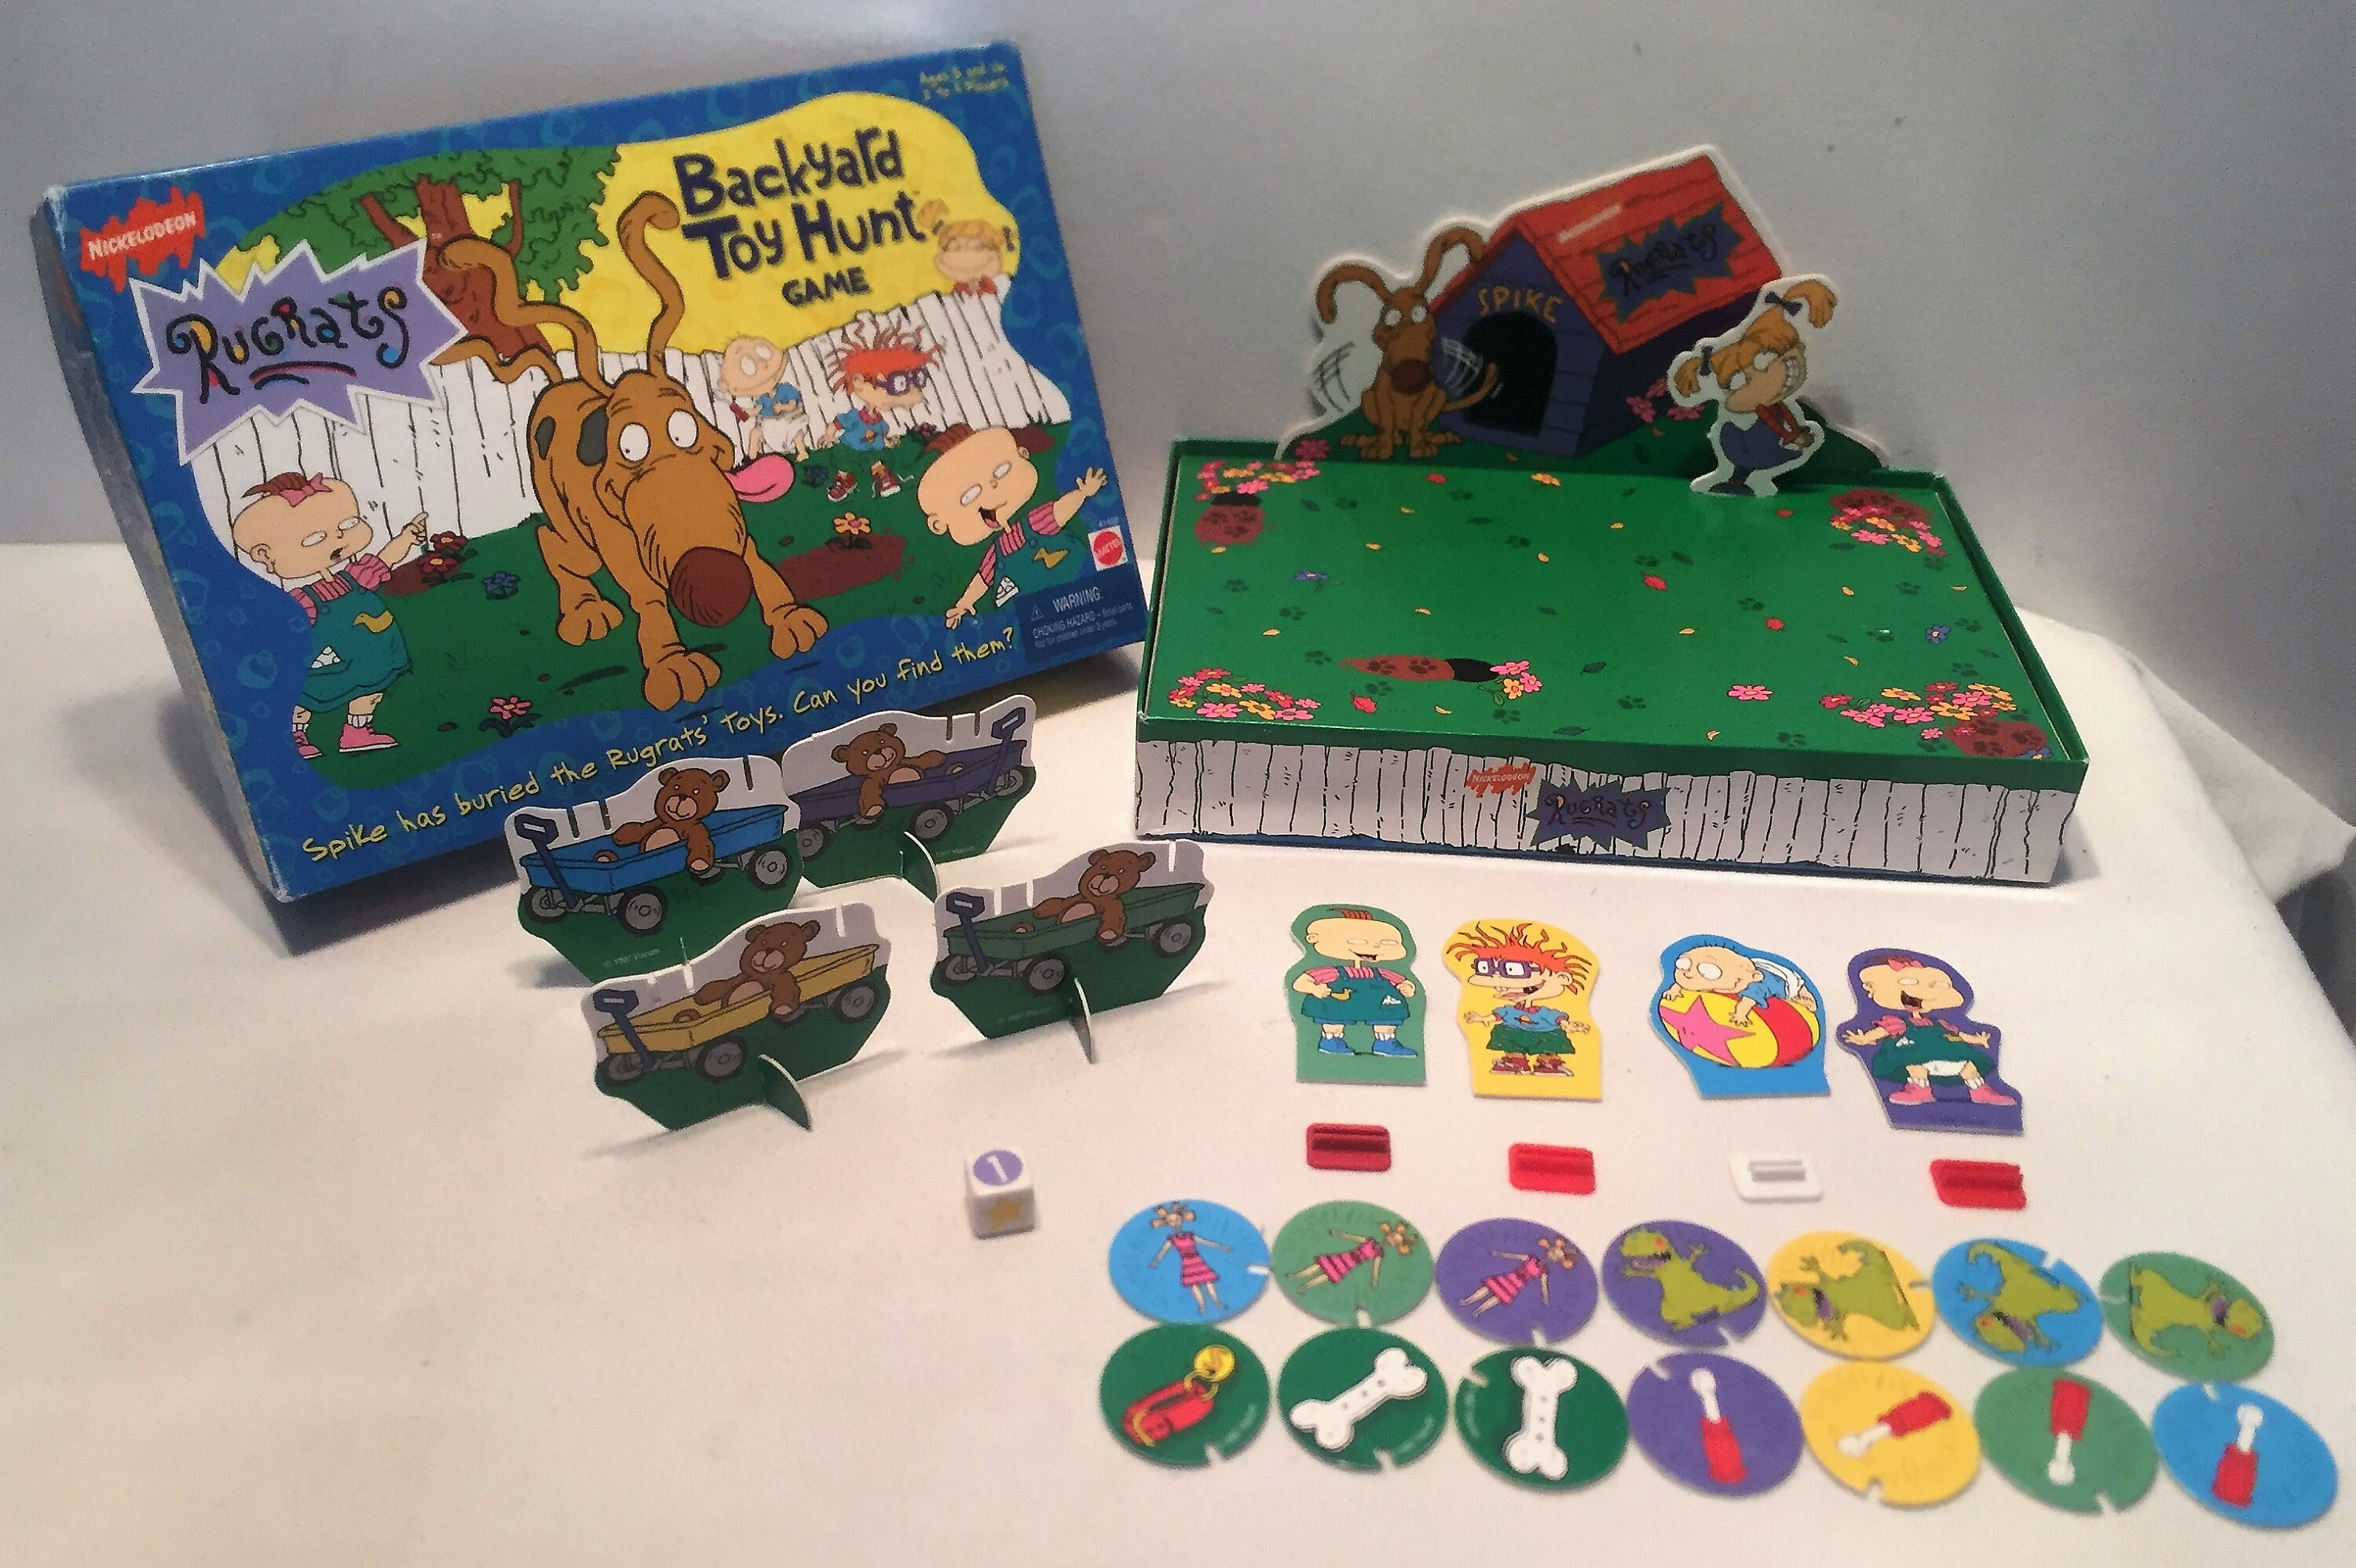 Backyard Nickelodeon nickelodeon rugrats backyard toy hunt board game 41420 mattel 1997